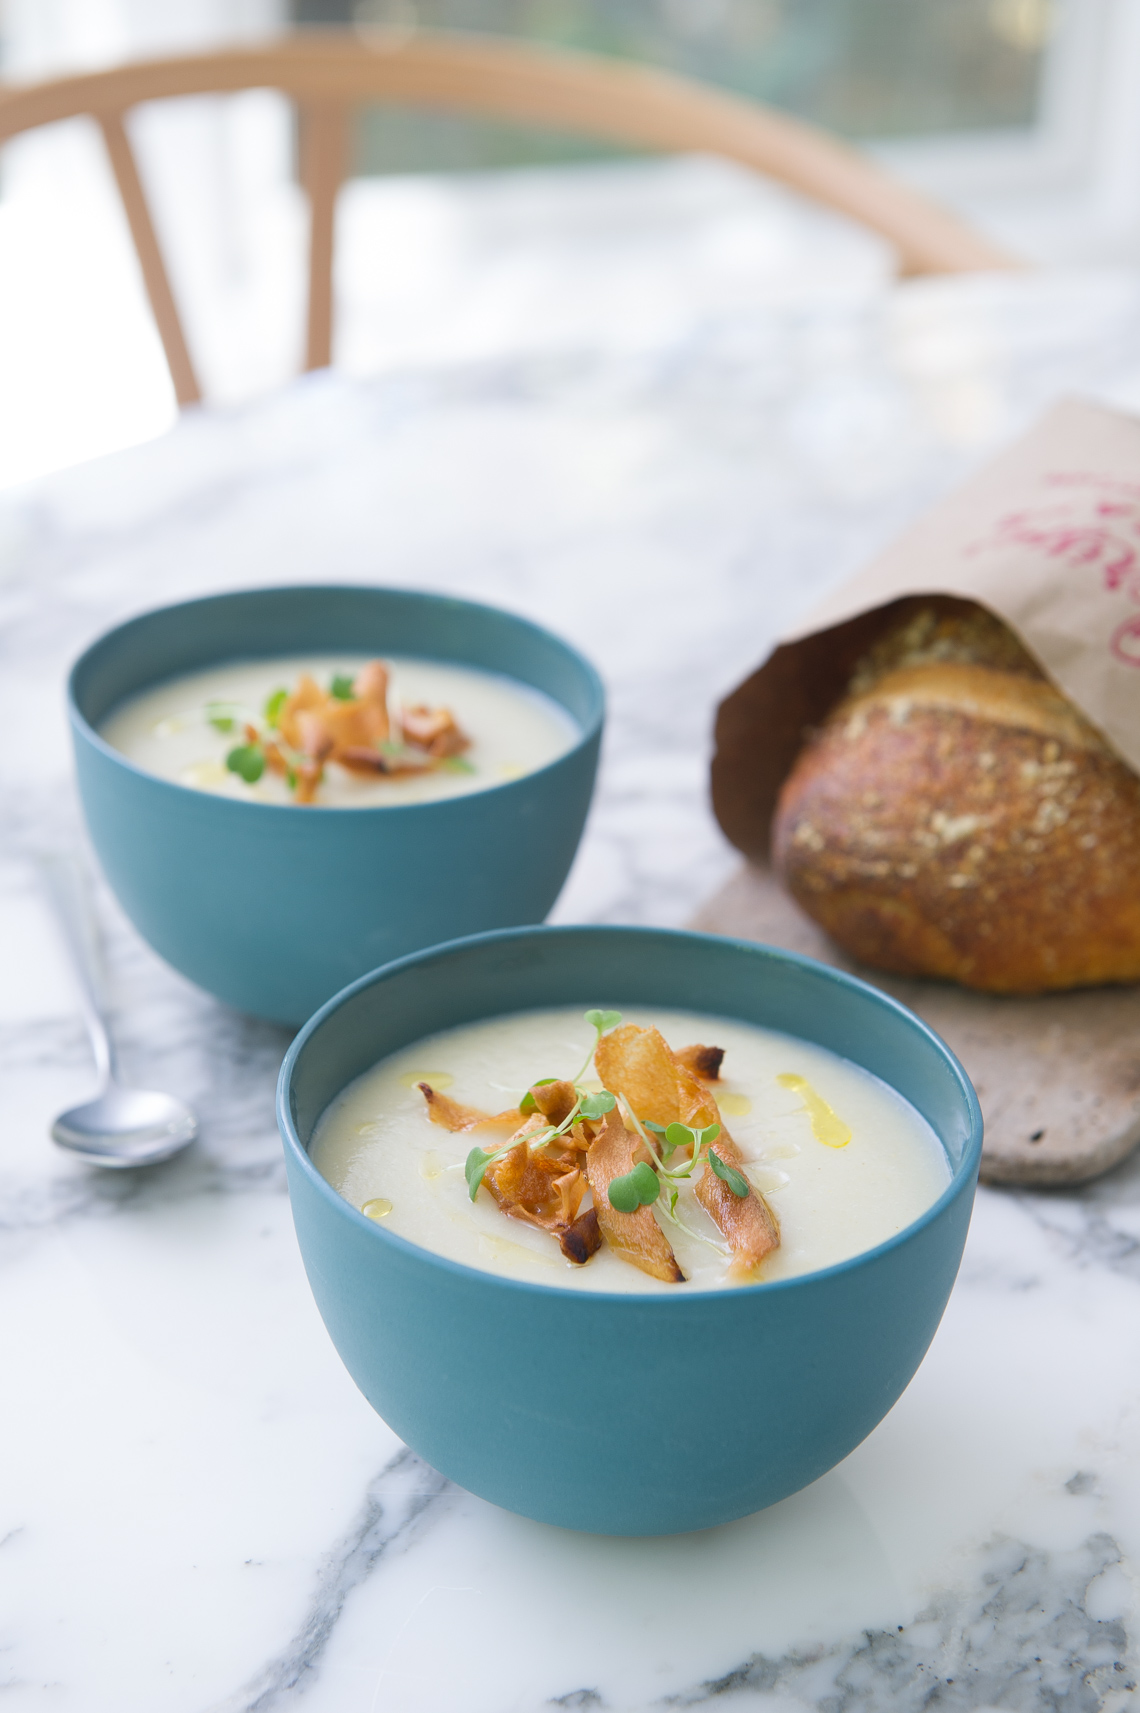 NYC Food Photographer - Cauliflower Soup